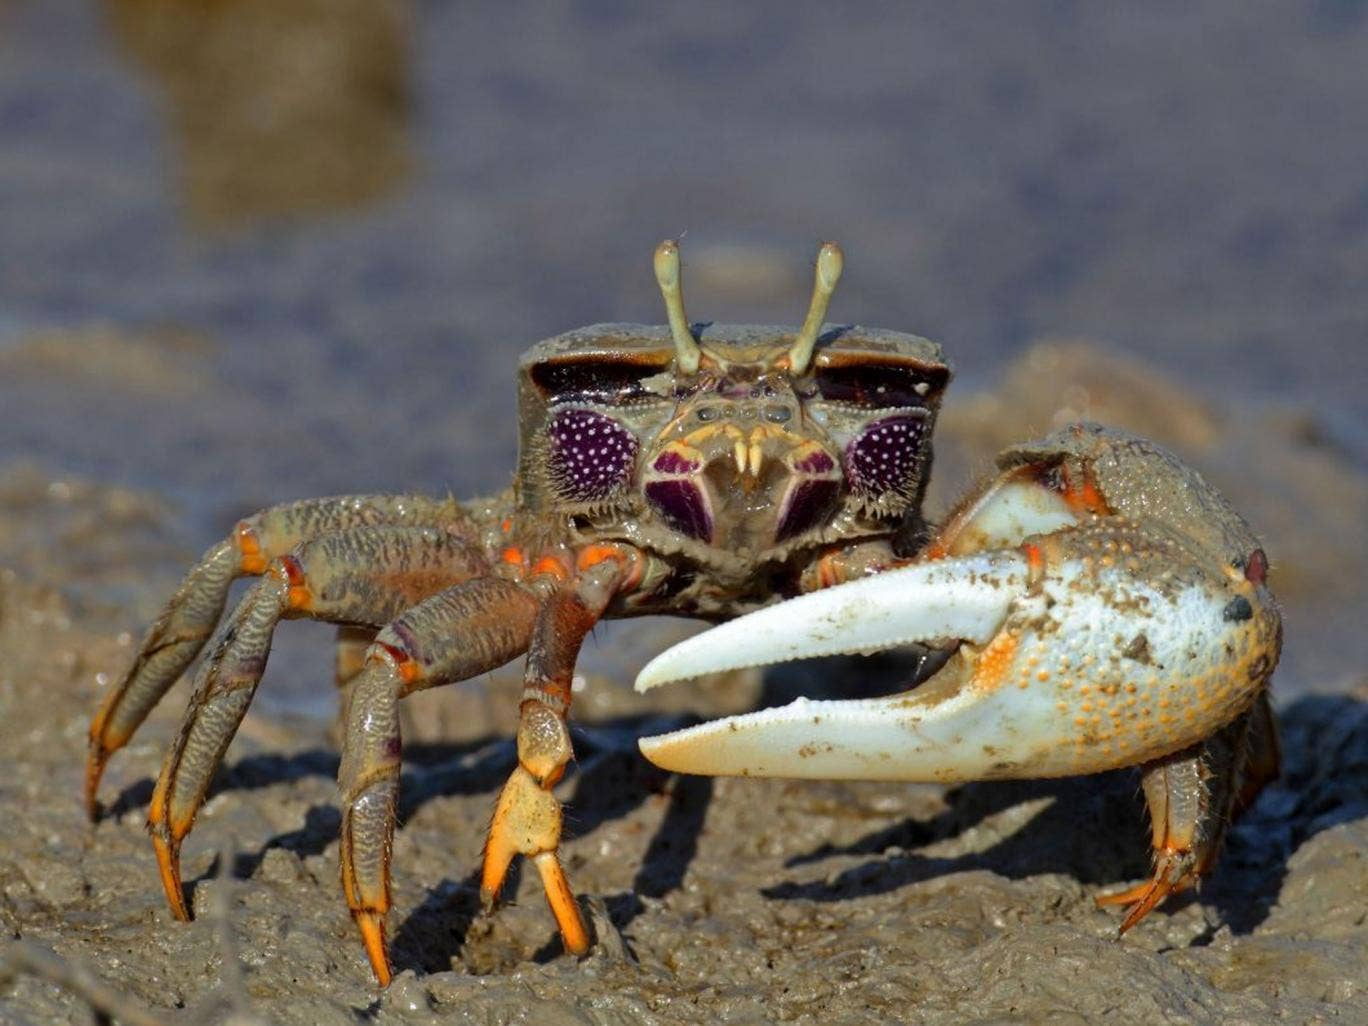 Fiddler crabs: During mating displays, the males stand beside other males who have smaller claws to make their own claws look bigger